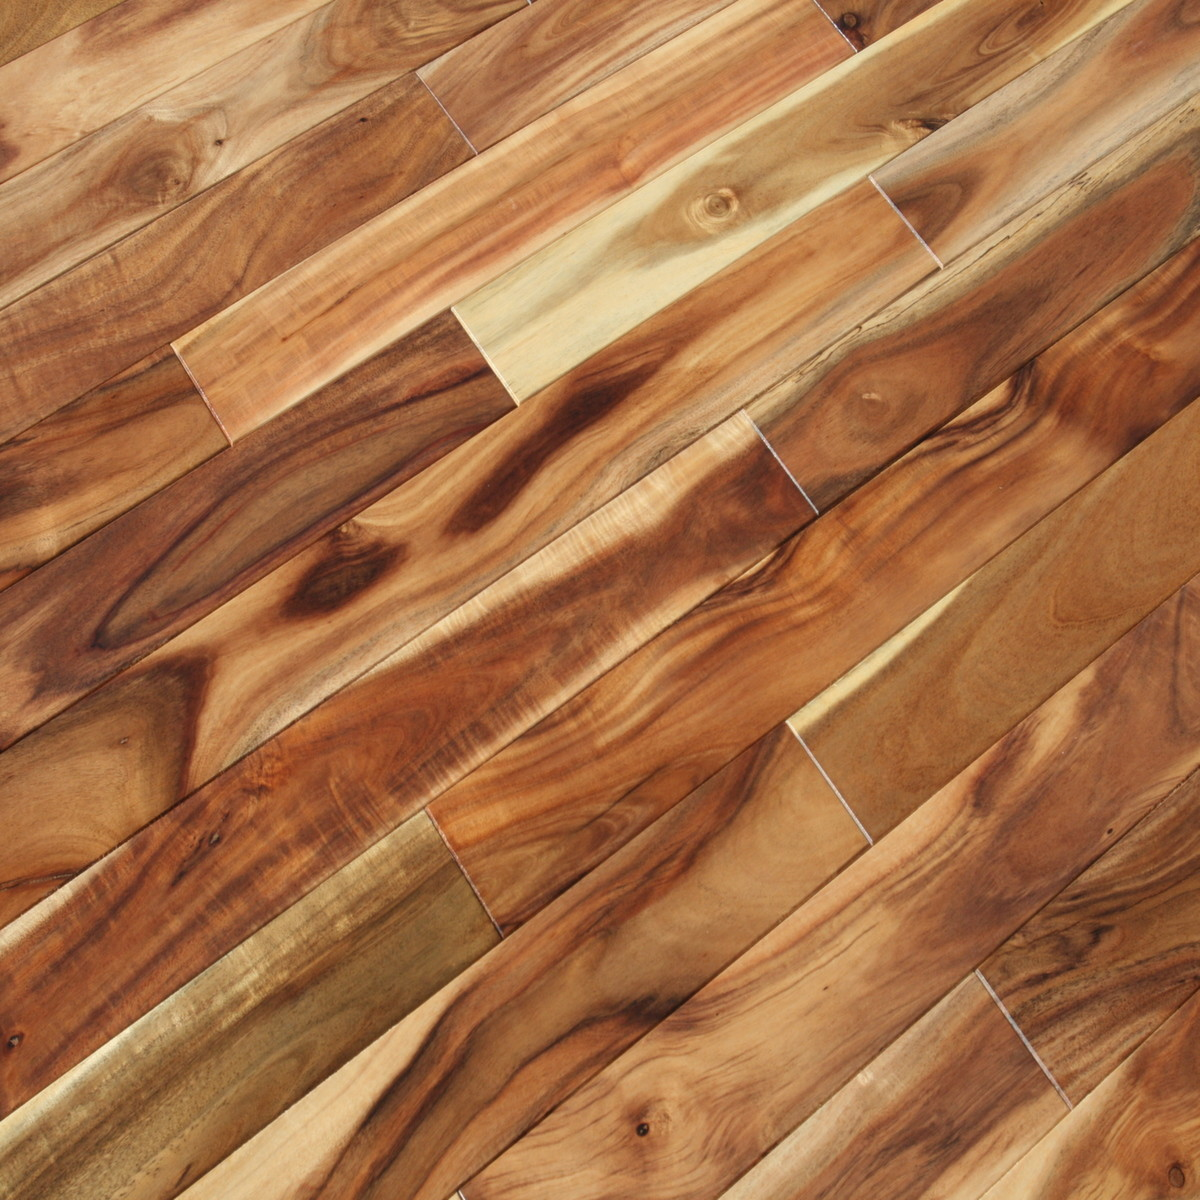 acacia blonde hardwood flooring acacia confusa wood On acacia hardwood flooring